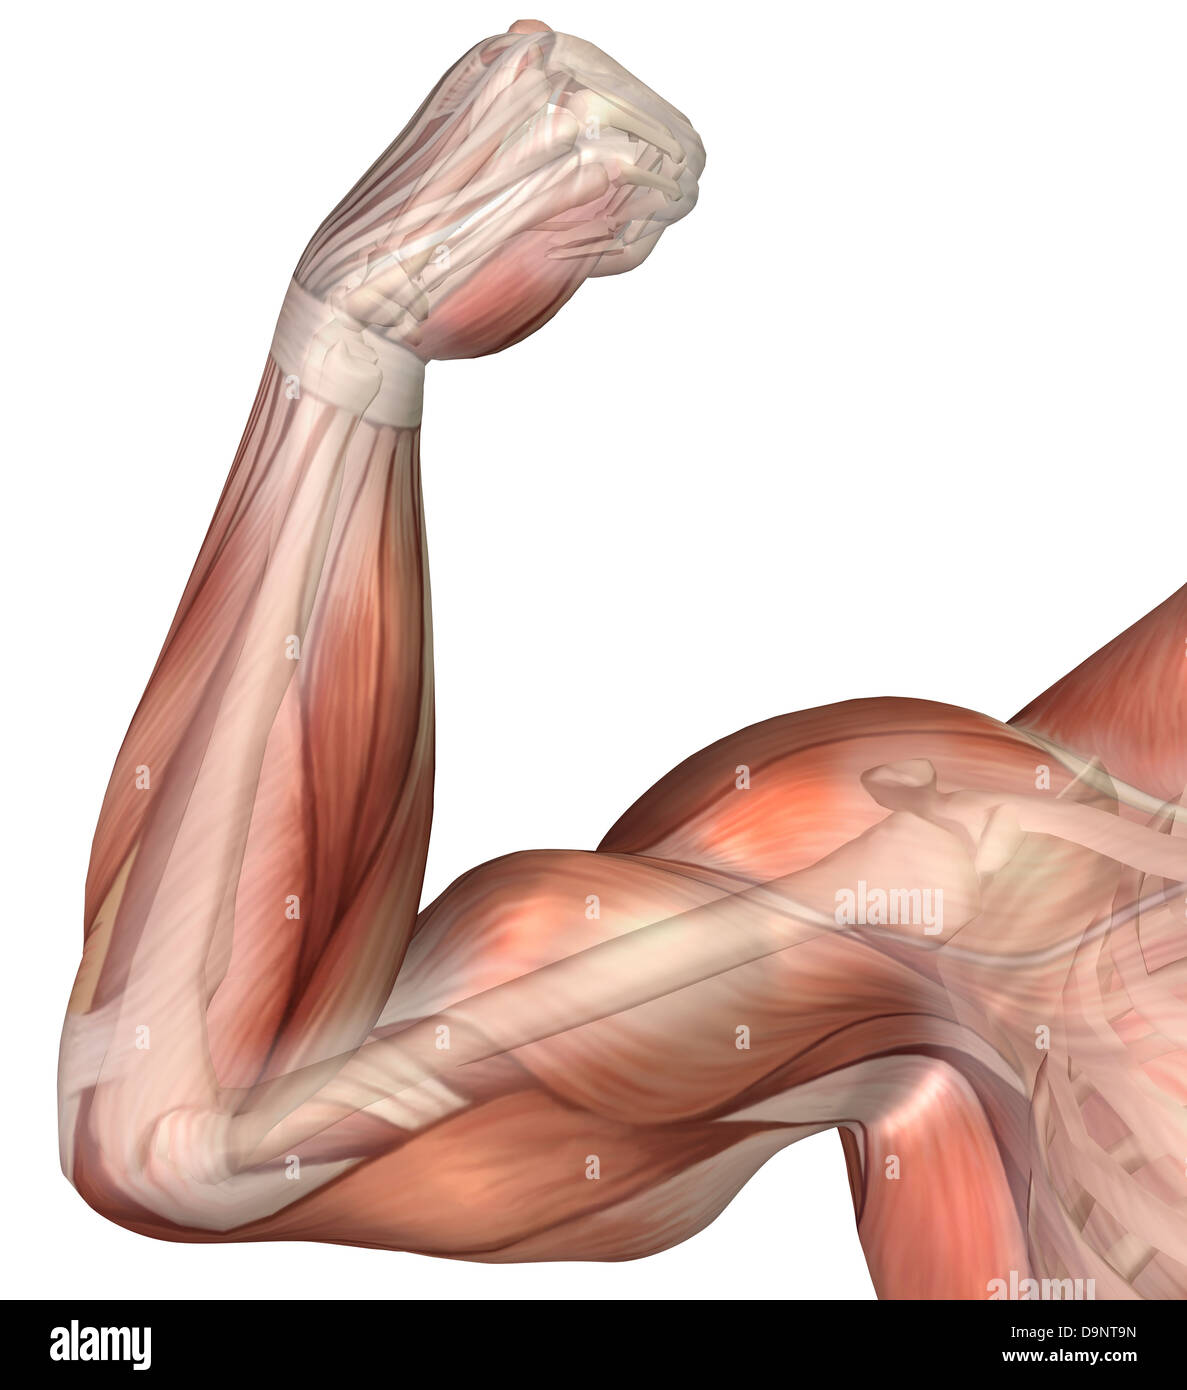 Illustration Of A Flexed Arm Showing Human Bicep Muscle Stock Photo